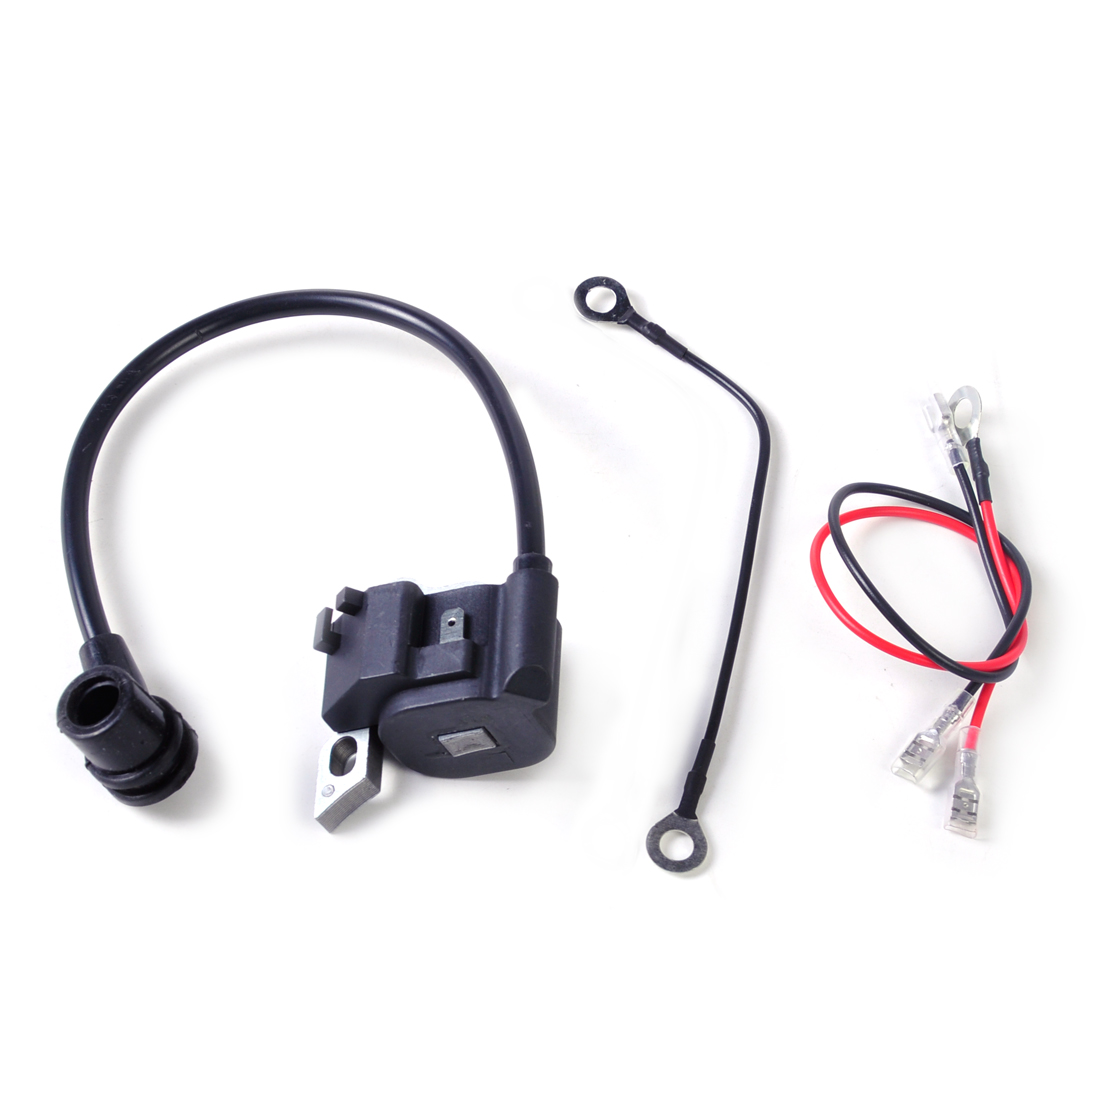 0000 400 1306 Ignition Module Coil For Stihl MS210 MS230 MS250 021 023 025